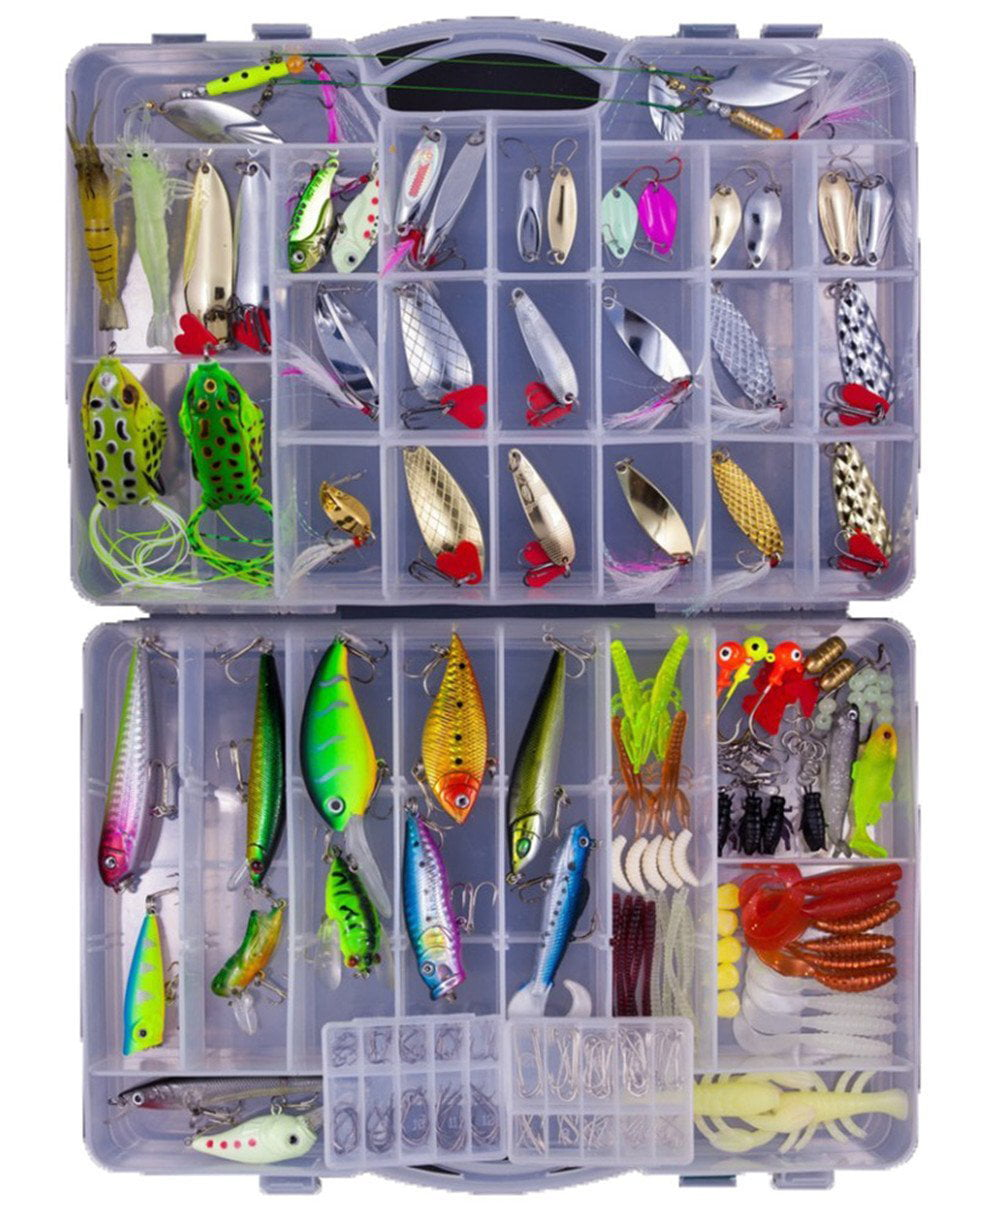 250PCS BOX Fishing Lures Mixed Lots including Hard Lure Minnow Popper Crankbaits VIB Topwater Diving Floating Lures Soft... by